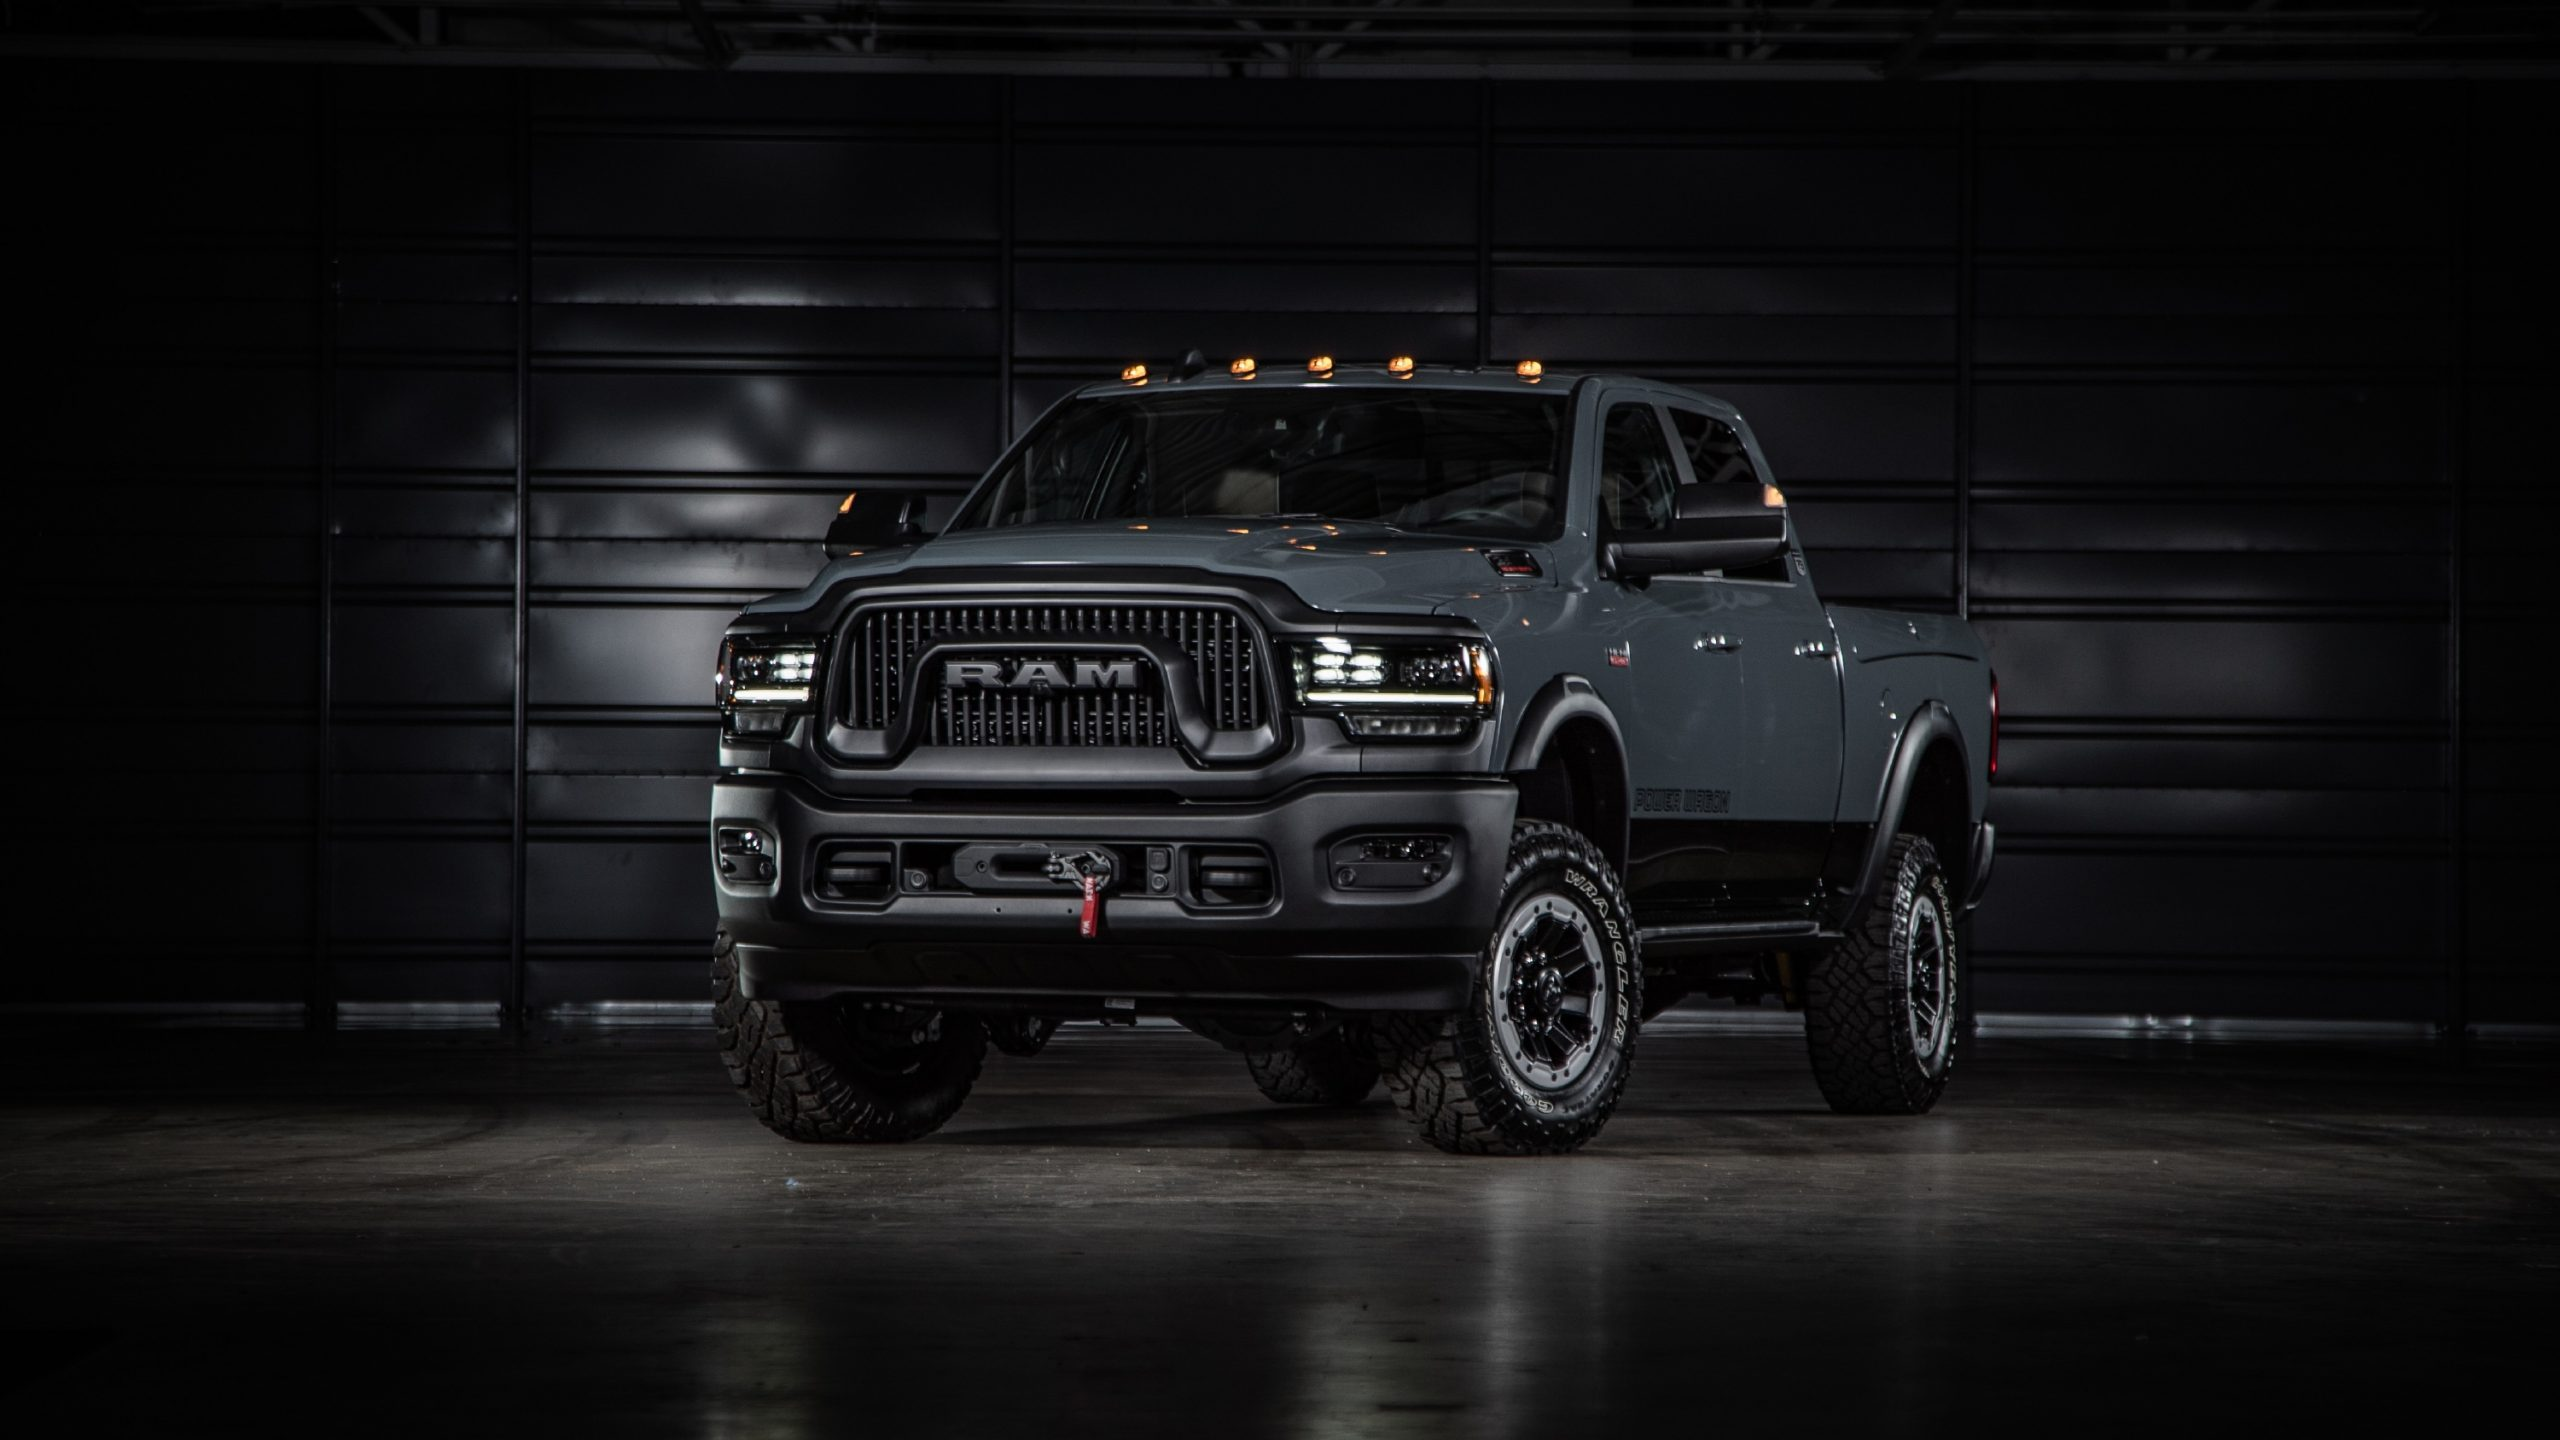 2021 Ram Power Wagon 75th Anniversary Edition – First Mass-production 4×4 Pickup Truck Celebrates 75 Years of Service